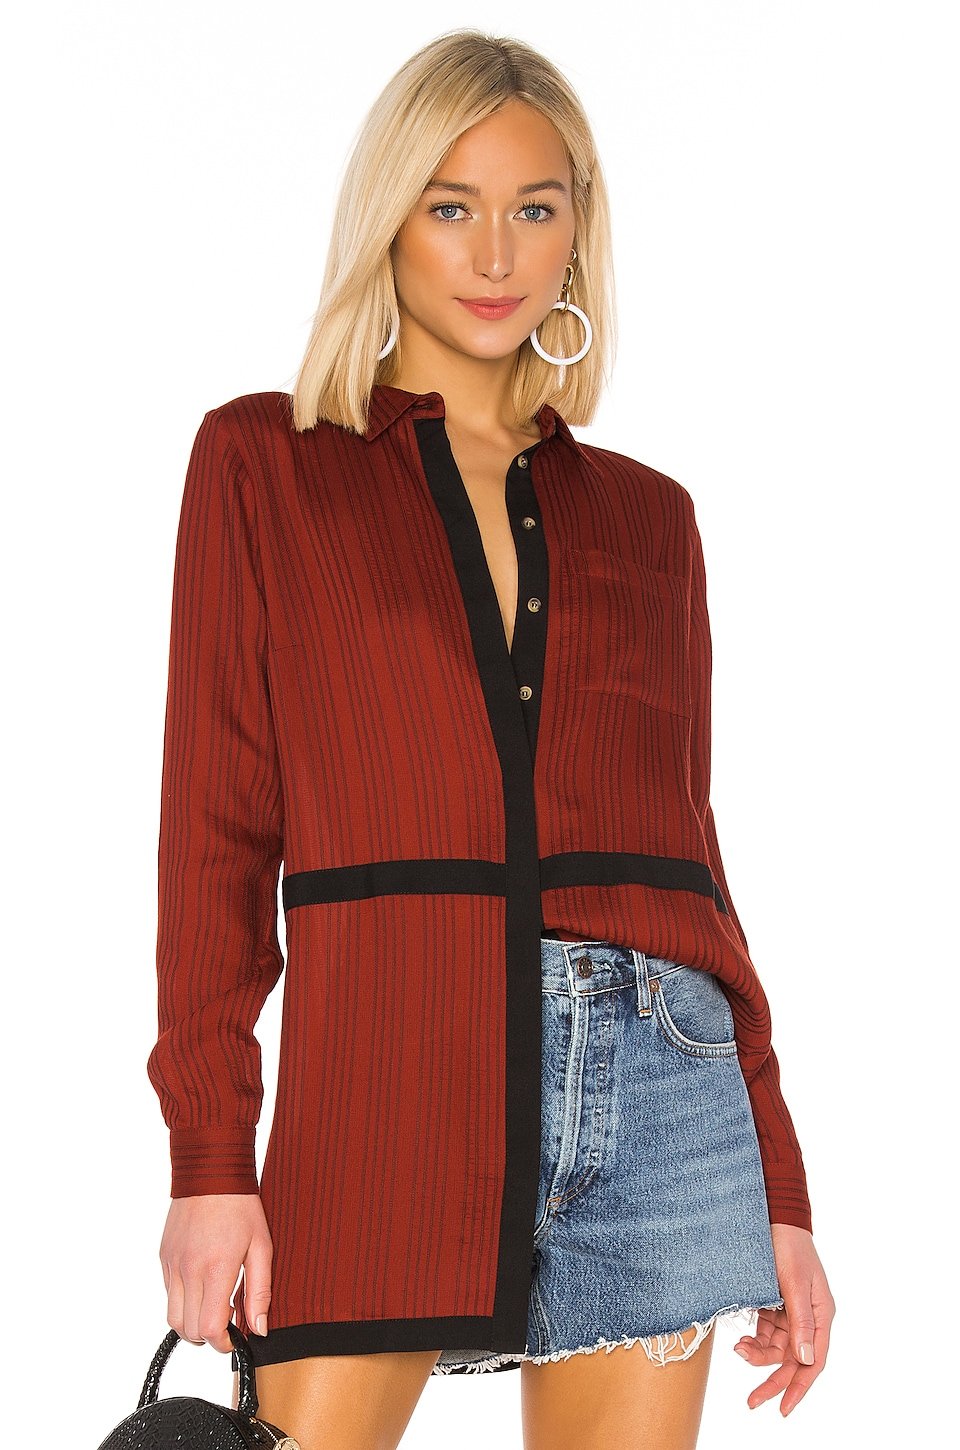 House of Harlow 1960 x REVOLVE Marie Blouse in Spice Red